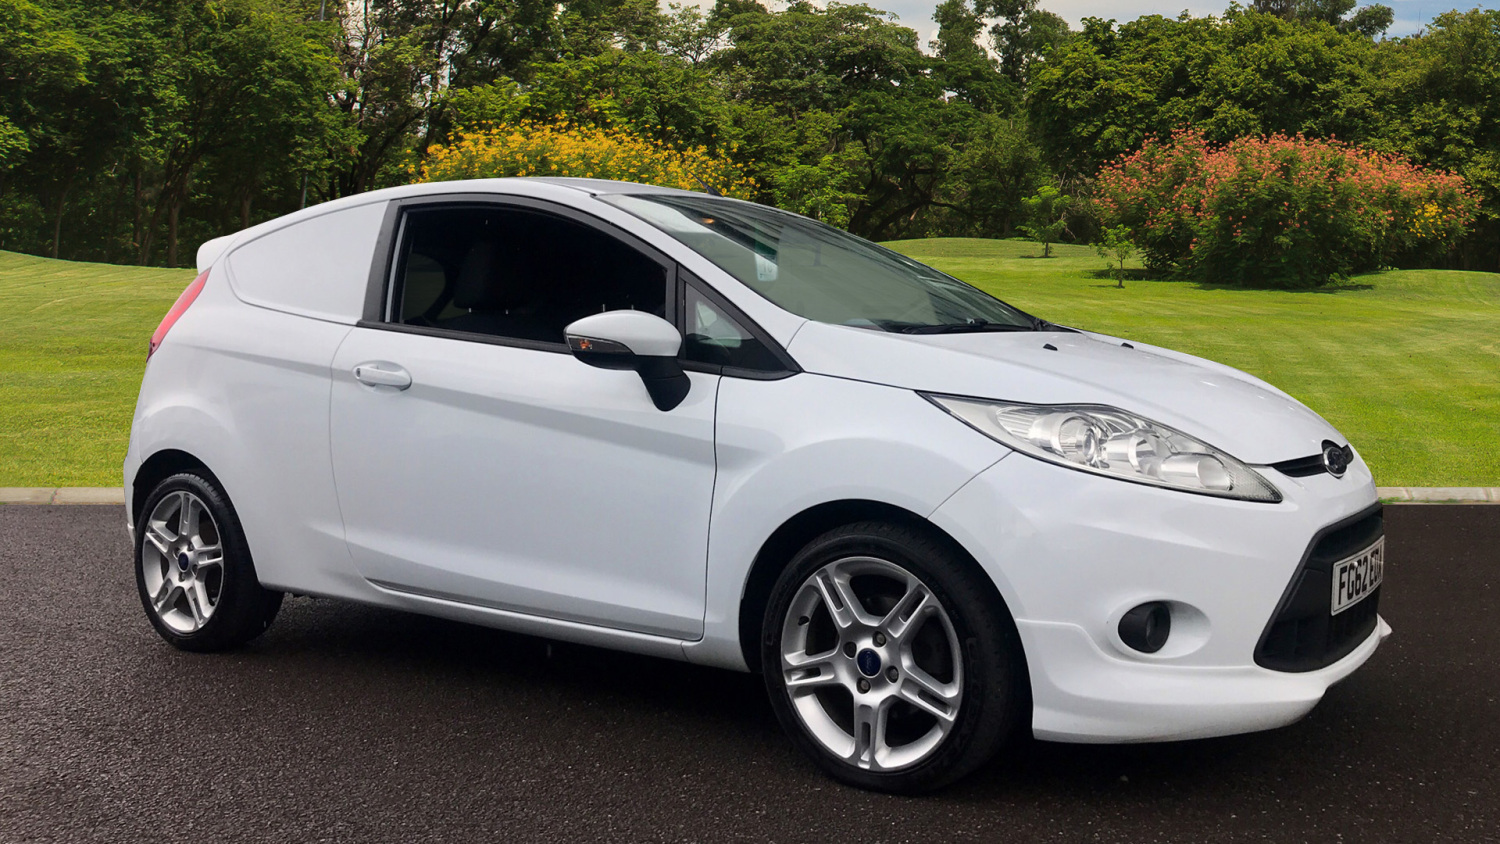 2e69499a3a6a22 Used Ford Fiesta Diesel 1.6 TDCi 95 Sport Van for Sale